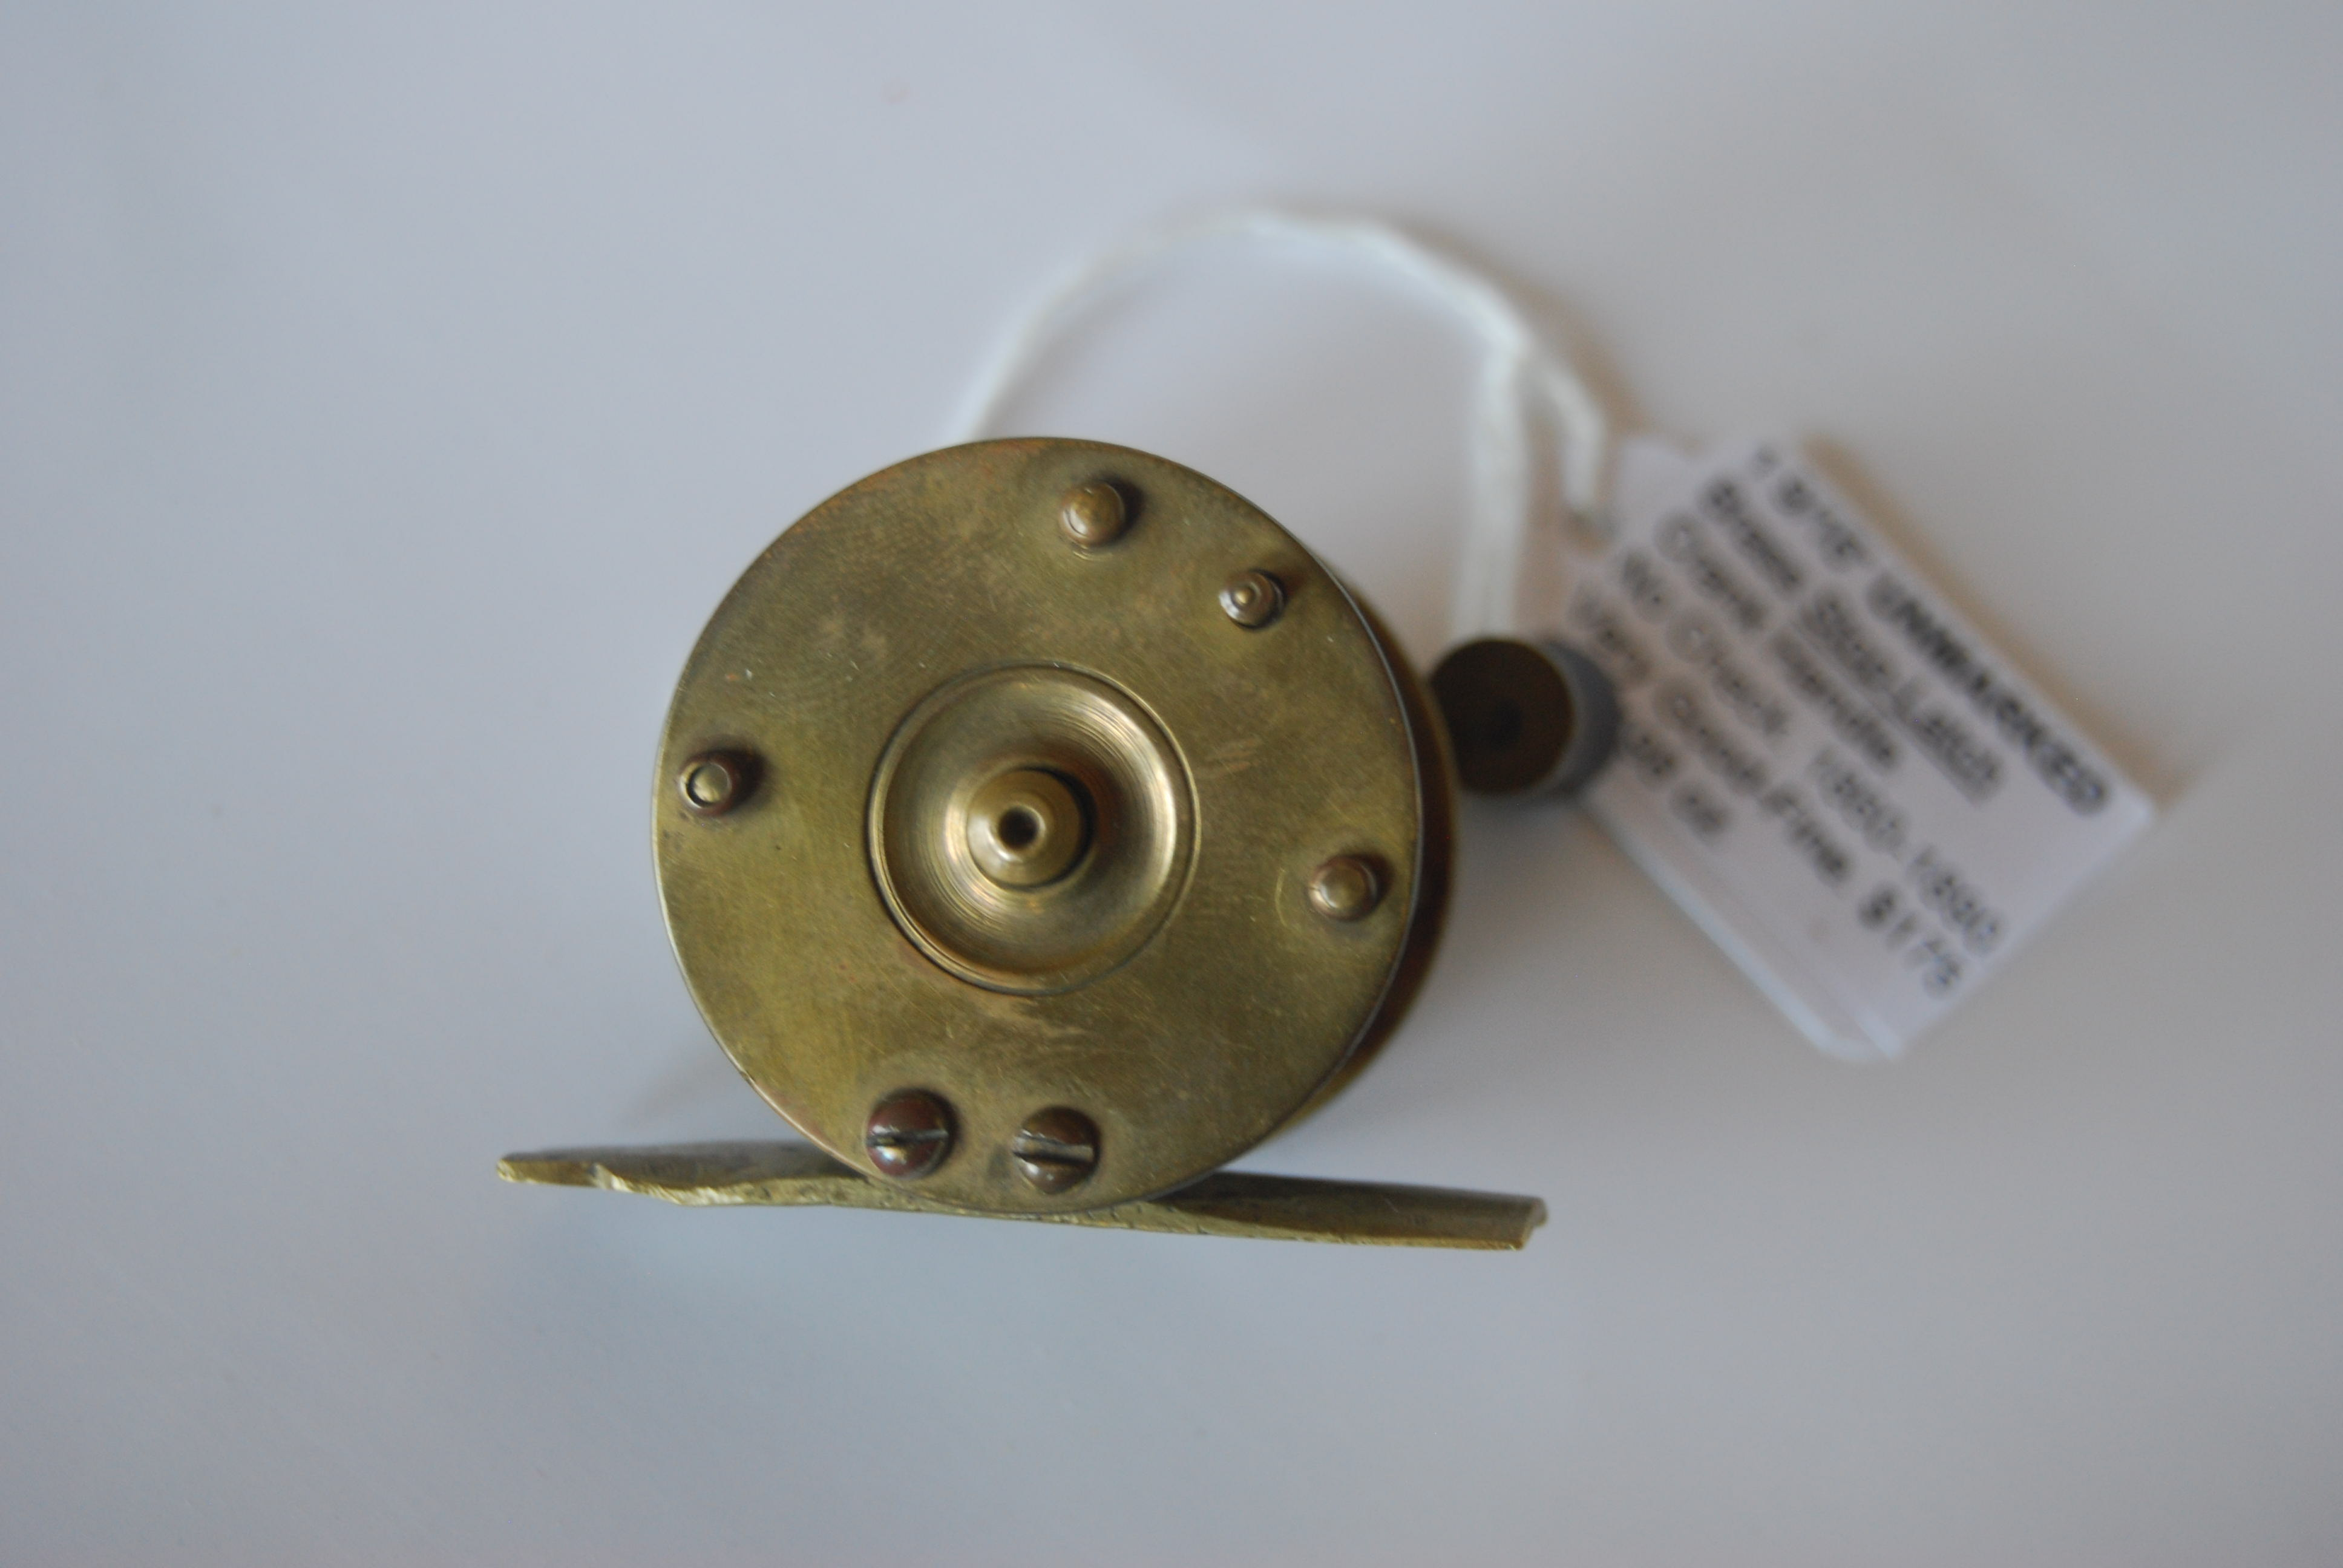 "Image for 1 9/16"" UNMARKED Brass Stop-latch reel. 1 1/4 in. pillars; 3 1/4 oz.  No Check; Wood knob on crank handle; with olive & black braided line. Circa 1850-1890."